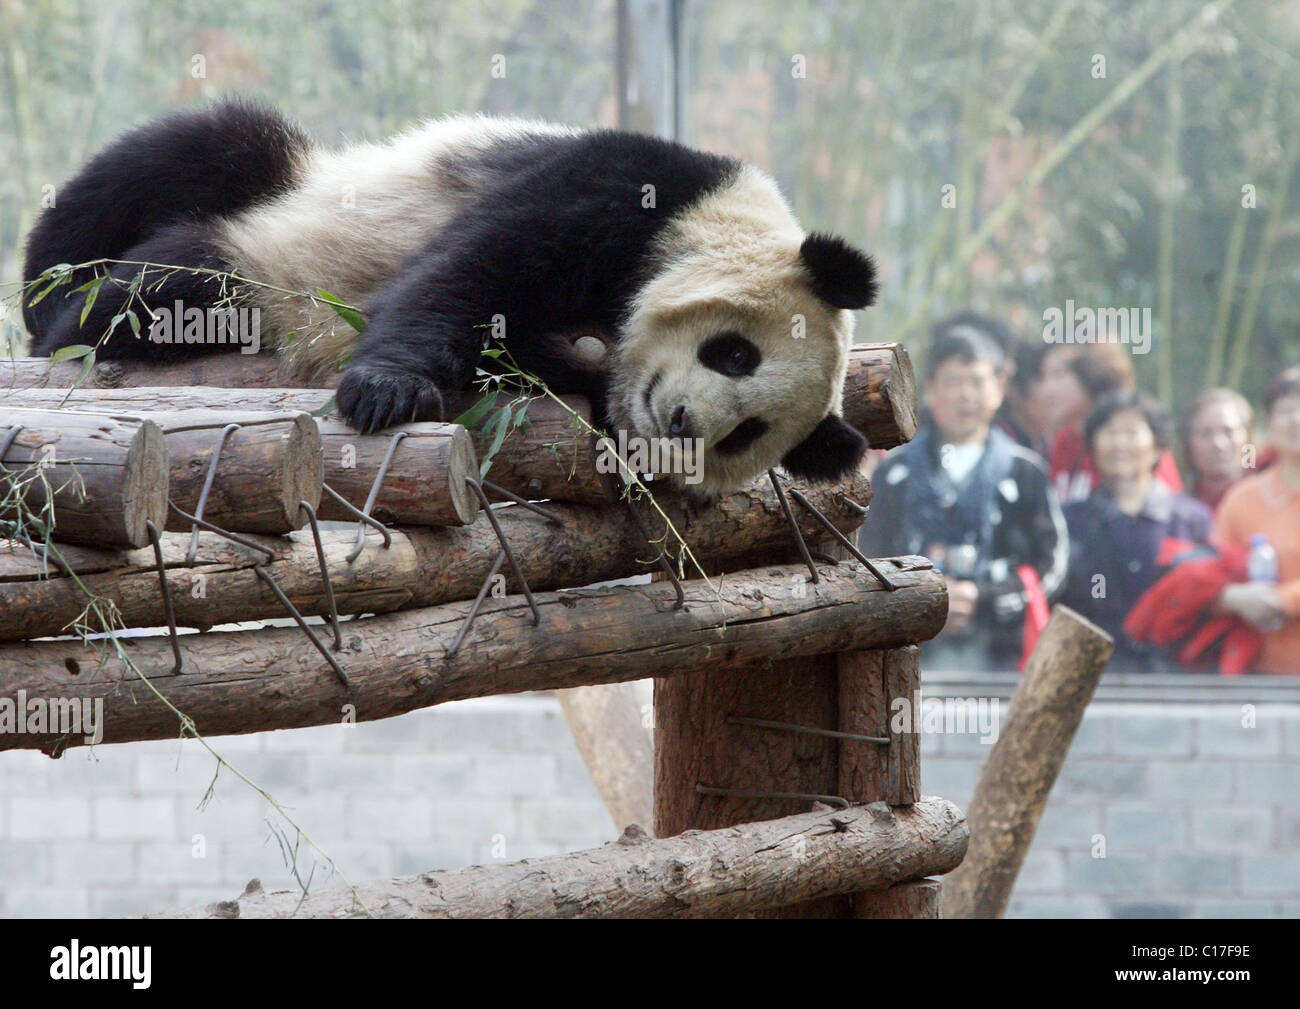 hight resolution of olympic pandas to return home the eight giant pandas chosen as mascots for the 2008 beijing olympics are preparing to return to